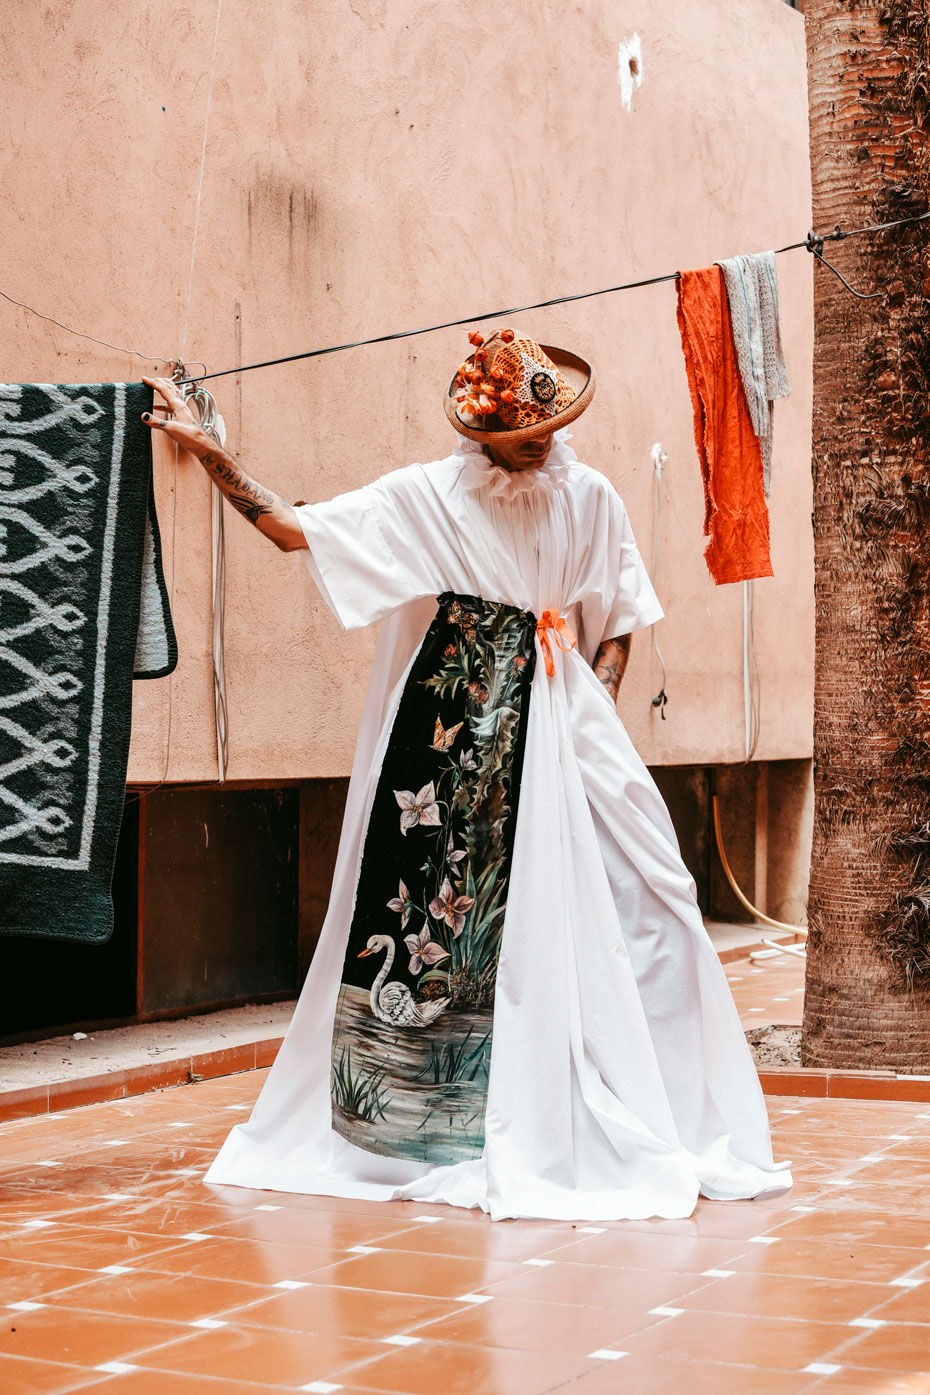 Travel | Marrakech - Enjoy Magazine